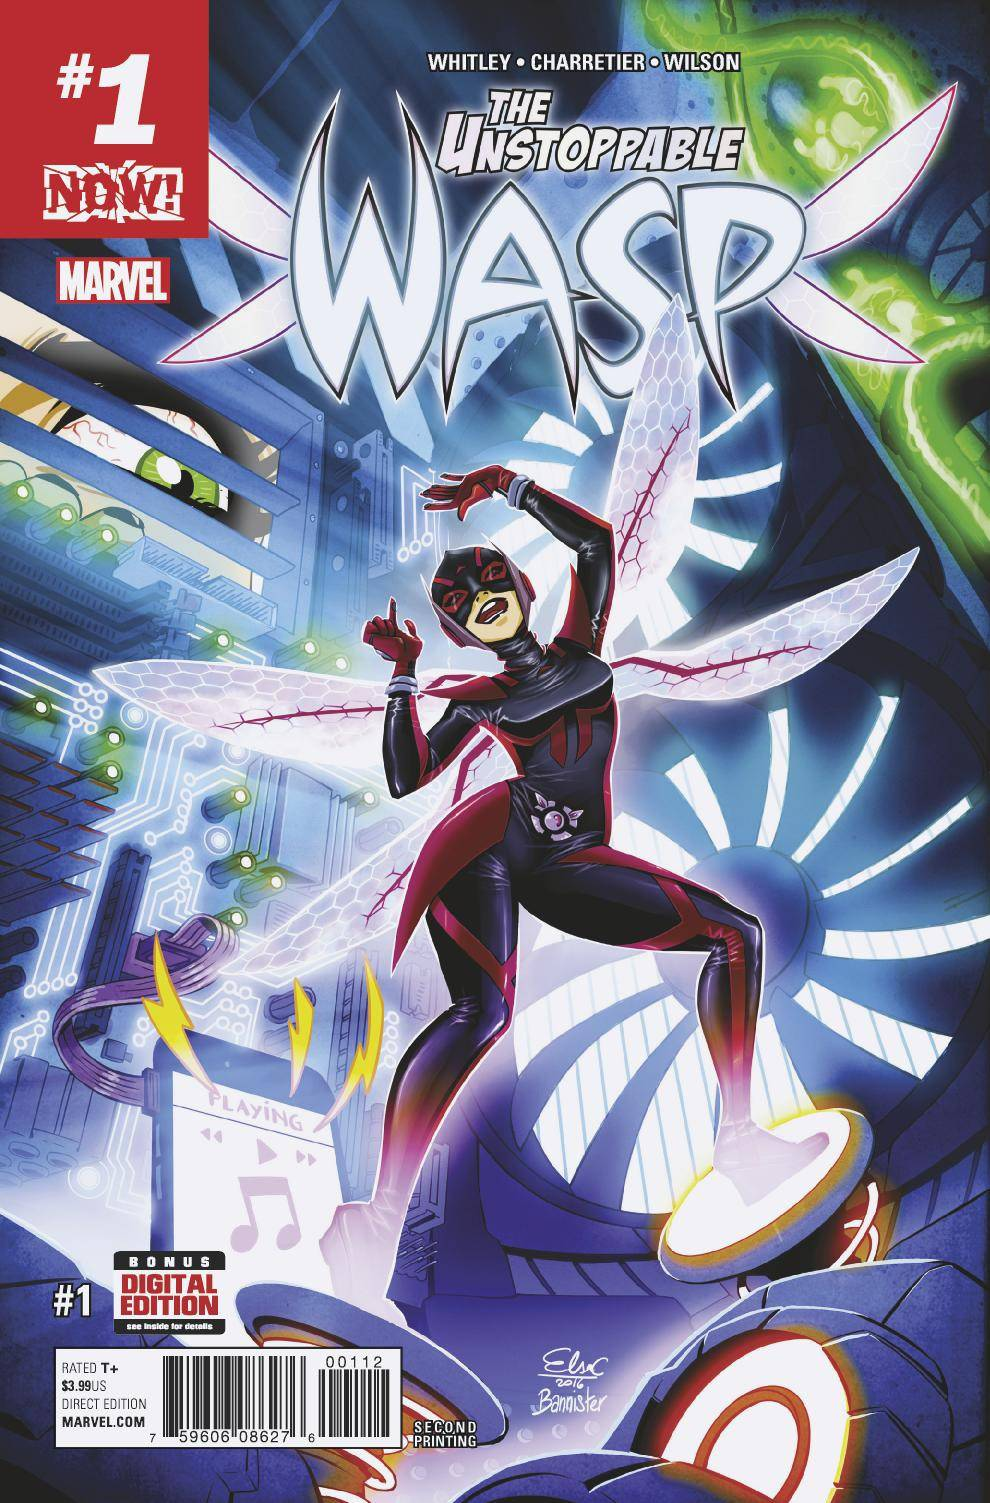 The Unstoppable Wasp #1 - Sarah's PickUnstoppable Wasp by writer Jeremy Whitley and artist Elsa Charretier: Nadia Pym has come to America fresh from being trained as an assassin in the Red Room. After a day with Ms. Marvel and Mockingbird, Nadia has decided to gather up the brightest young women around to form G.I.R.L.: Genius In action Research Labs. Each single issue ends with interviews with real life female scientists and the kinds of things that inspired them to go into the STEM fields.